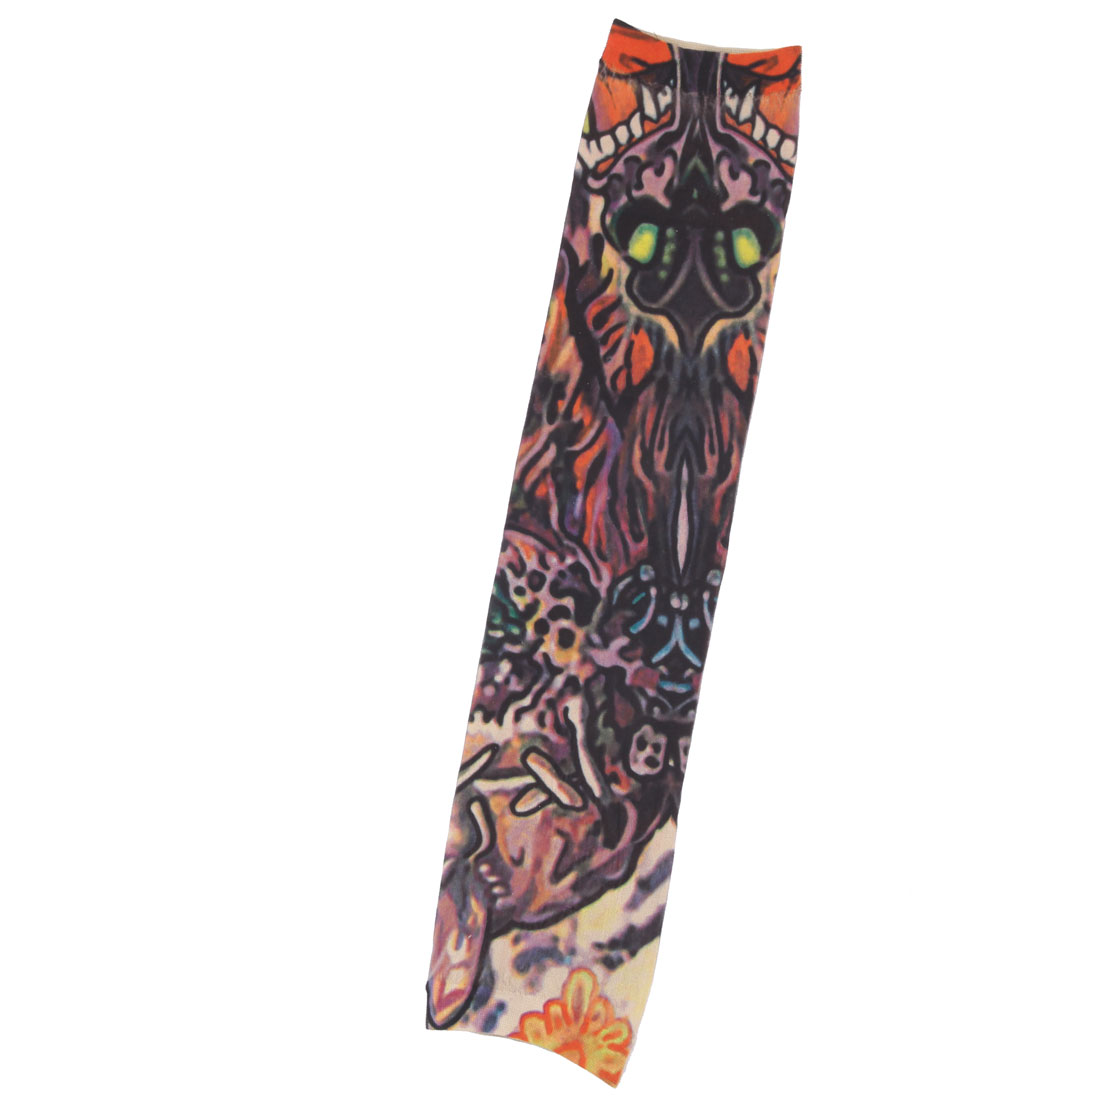 Outdoor Nylon Dragon Print Cleaning Exercising Arm Cover Sun Protection Sleeve Oversleeve Multicolor